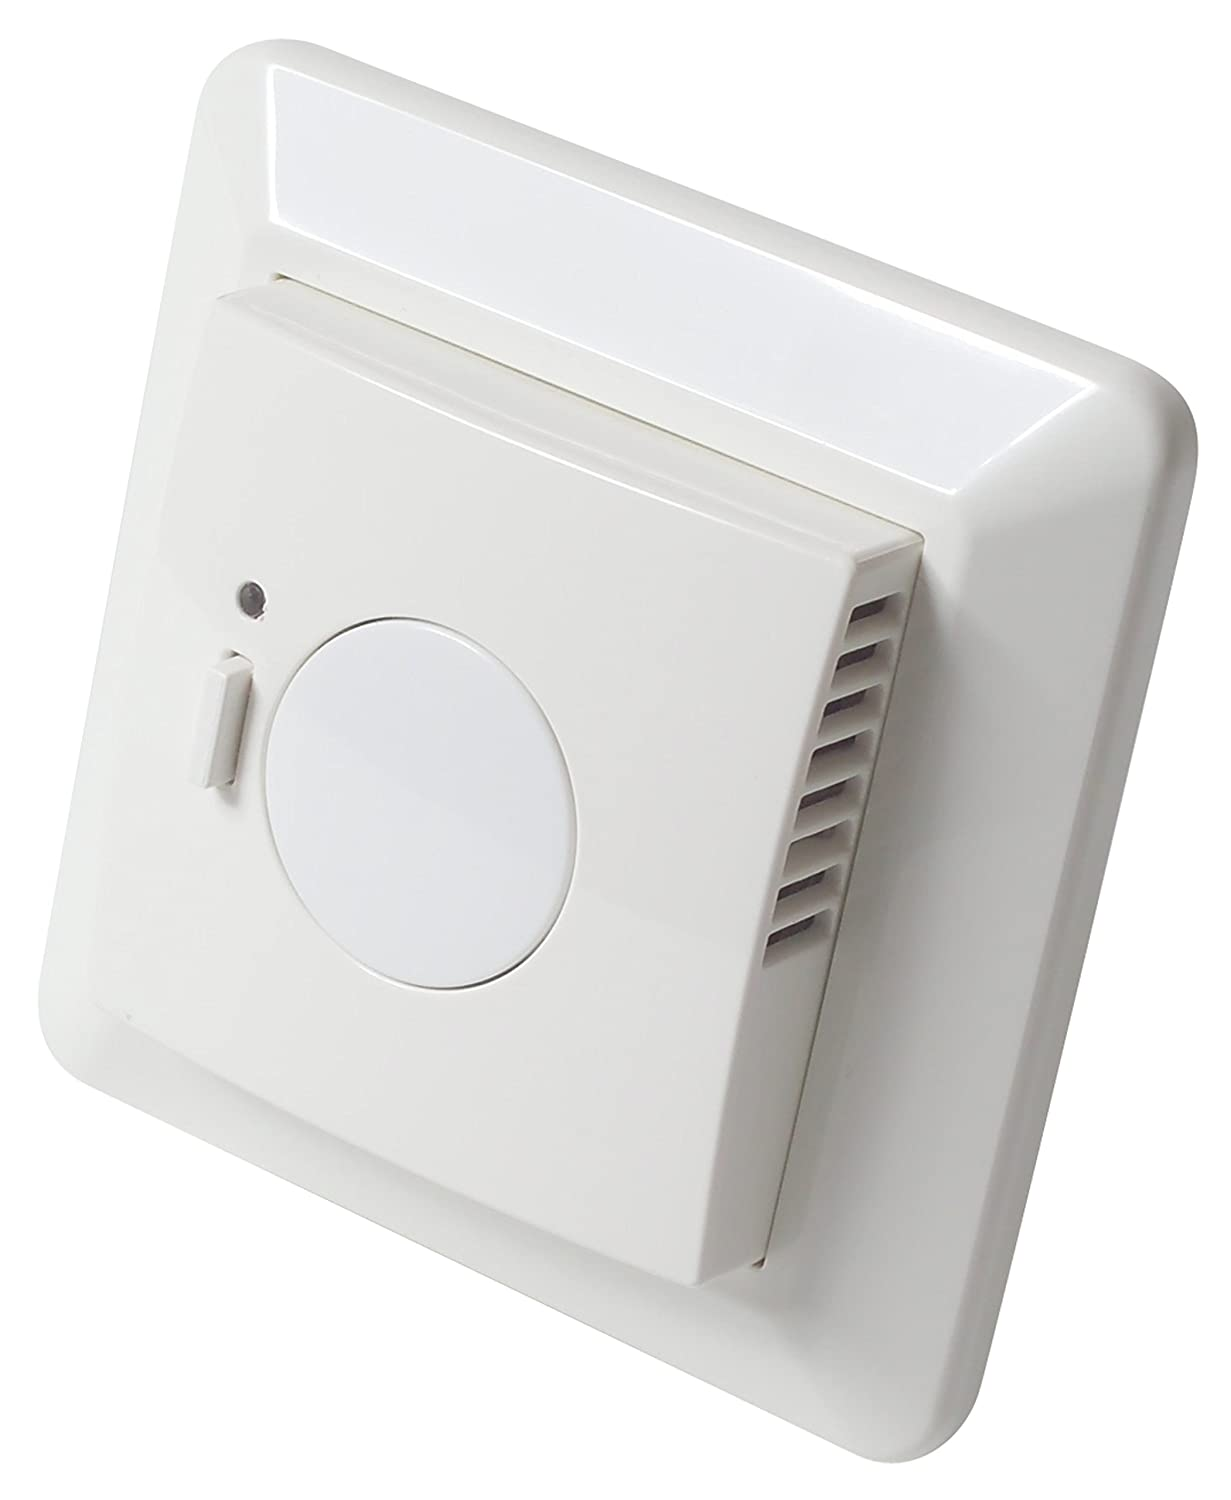 Danfoss Link Switch Relay Ft With Floor Sensor ideal for Controlling Your For Underfloor Heating